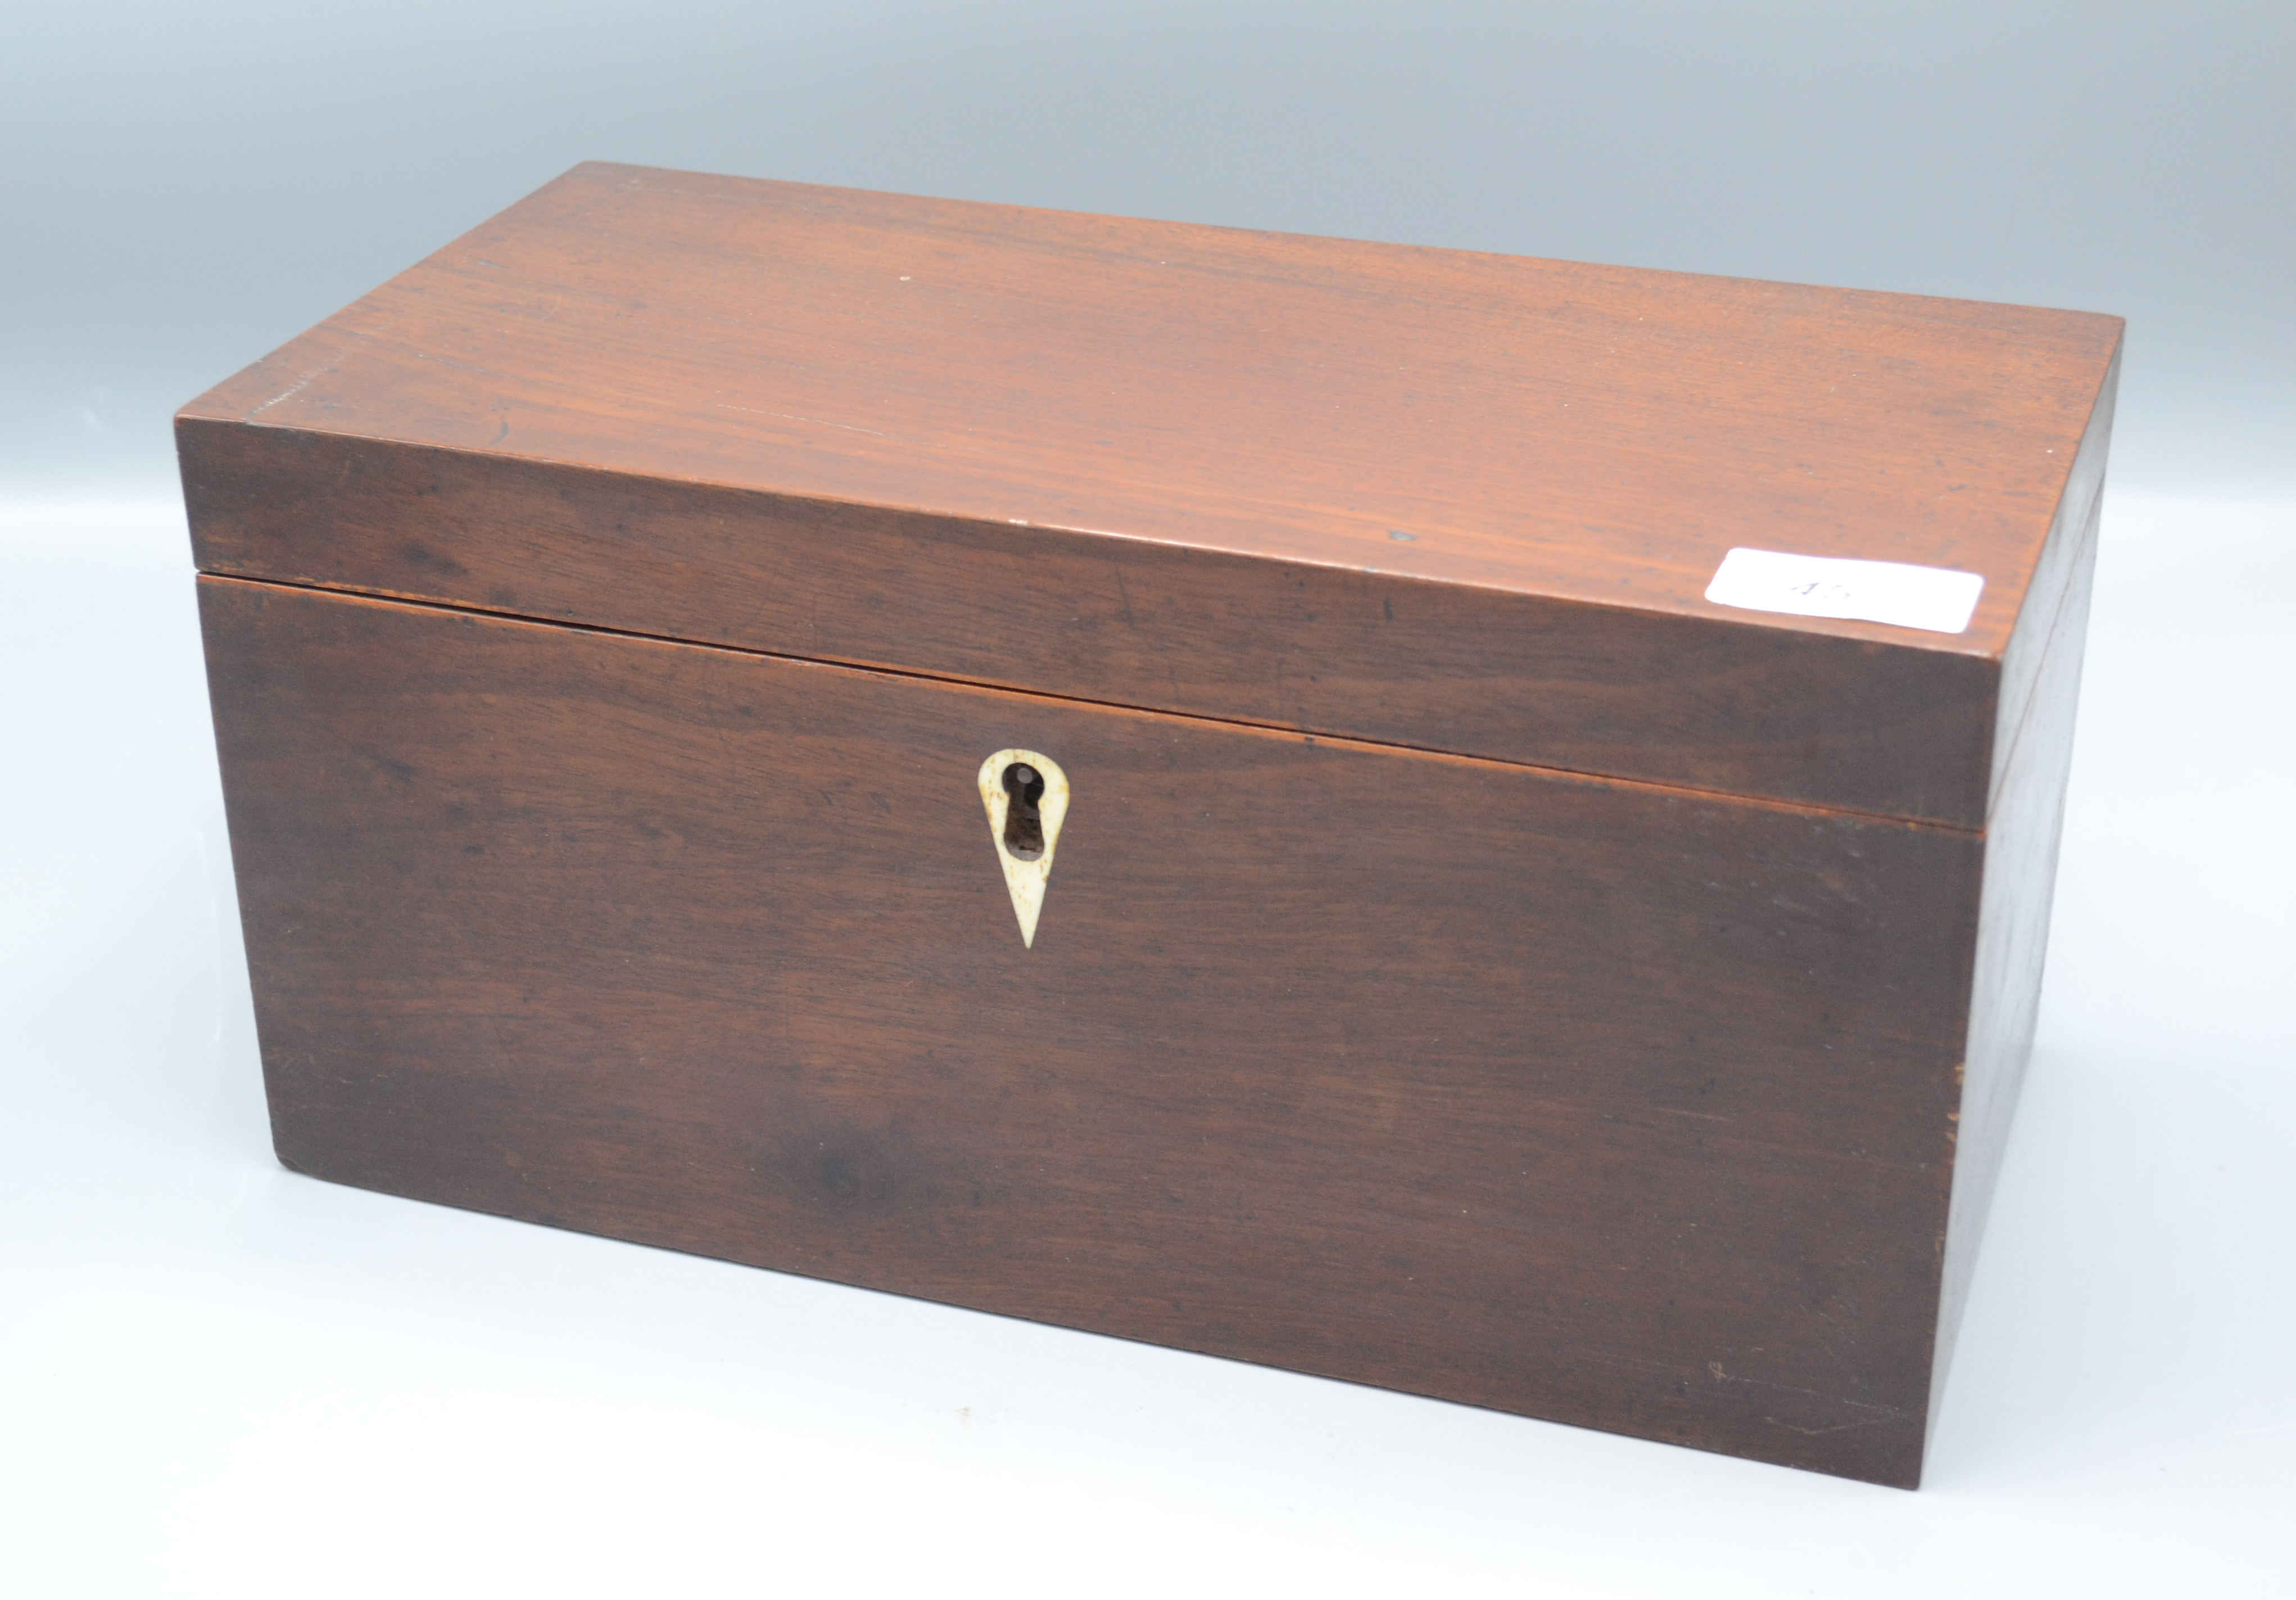 Lot 45 - A Regency mahogany veneered three section tea chest with an engraved glass sugar bowl, height 15cm,